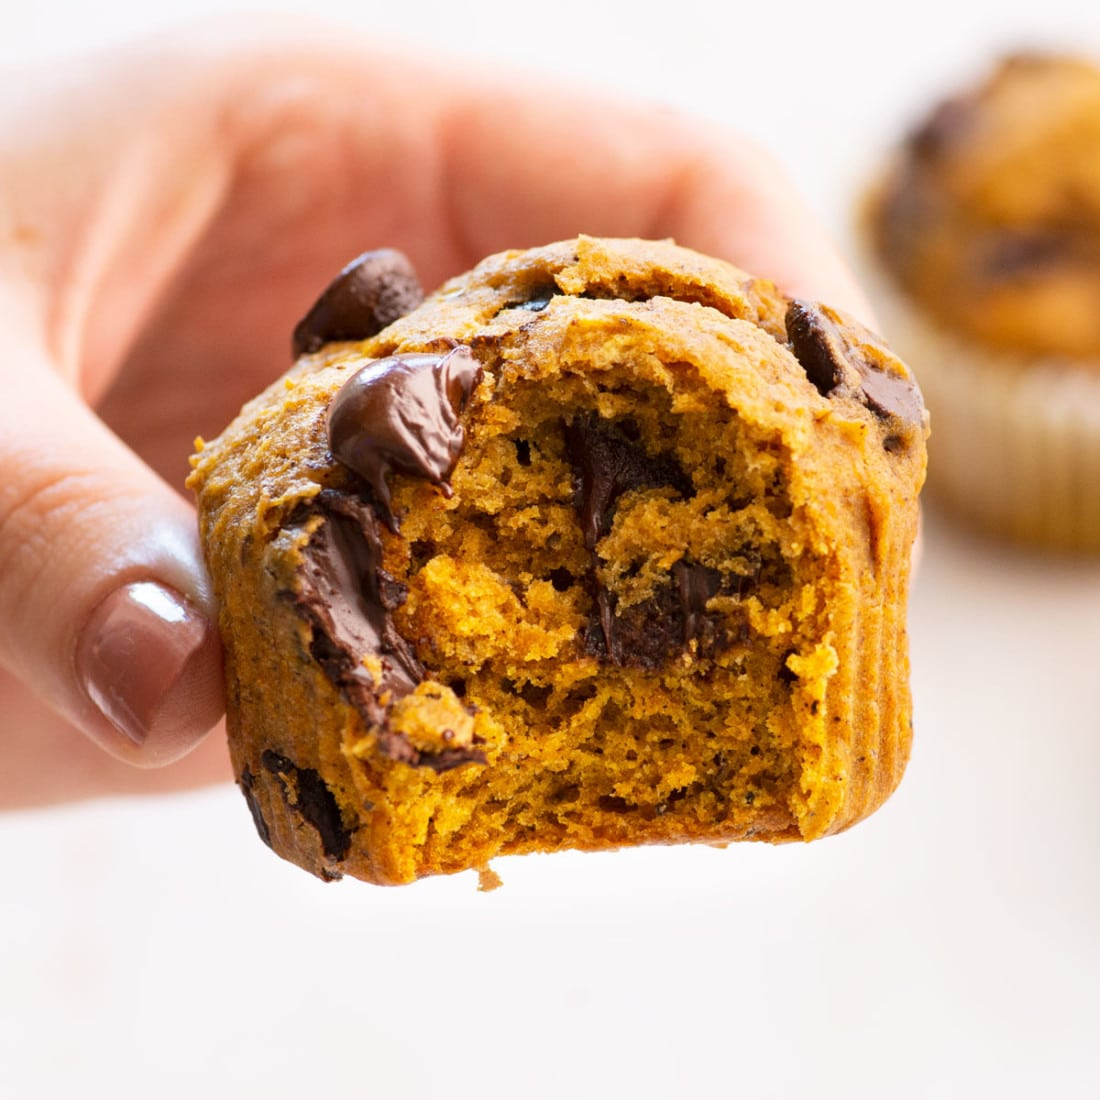 close up view of bite taken from a vegan pumpkin muffin with chocolate chips